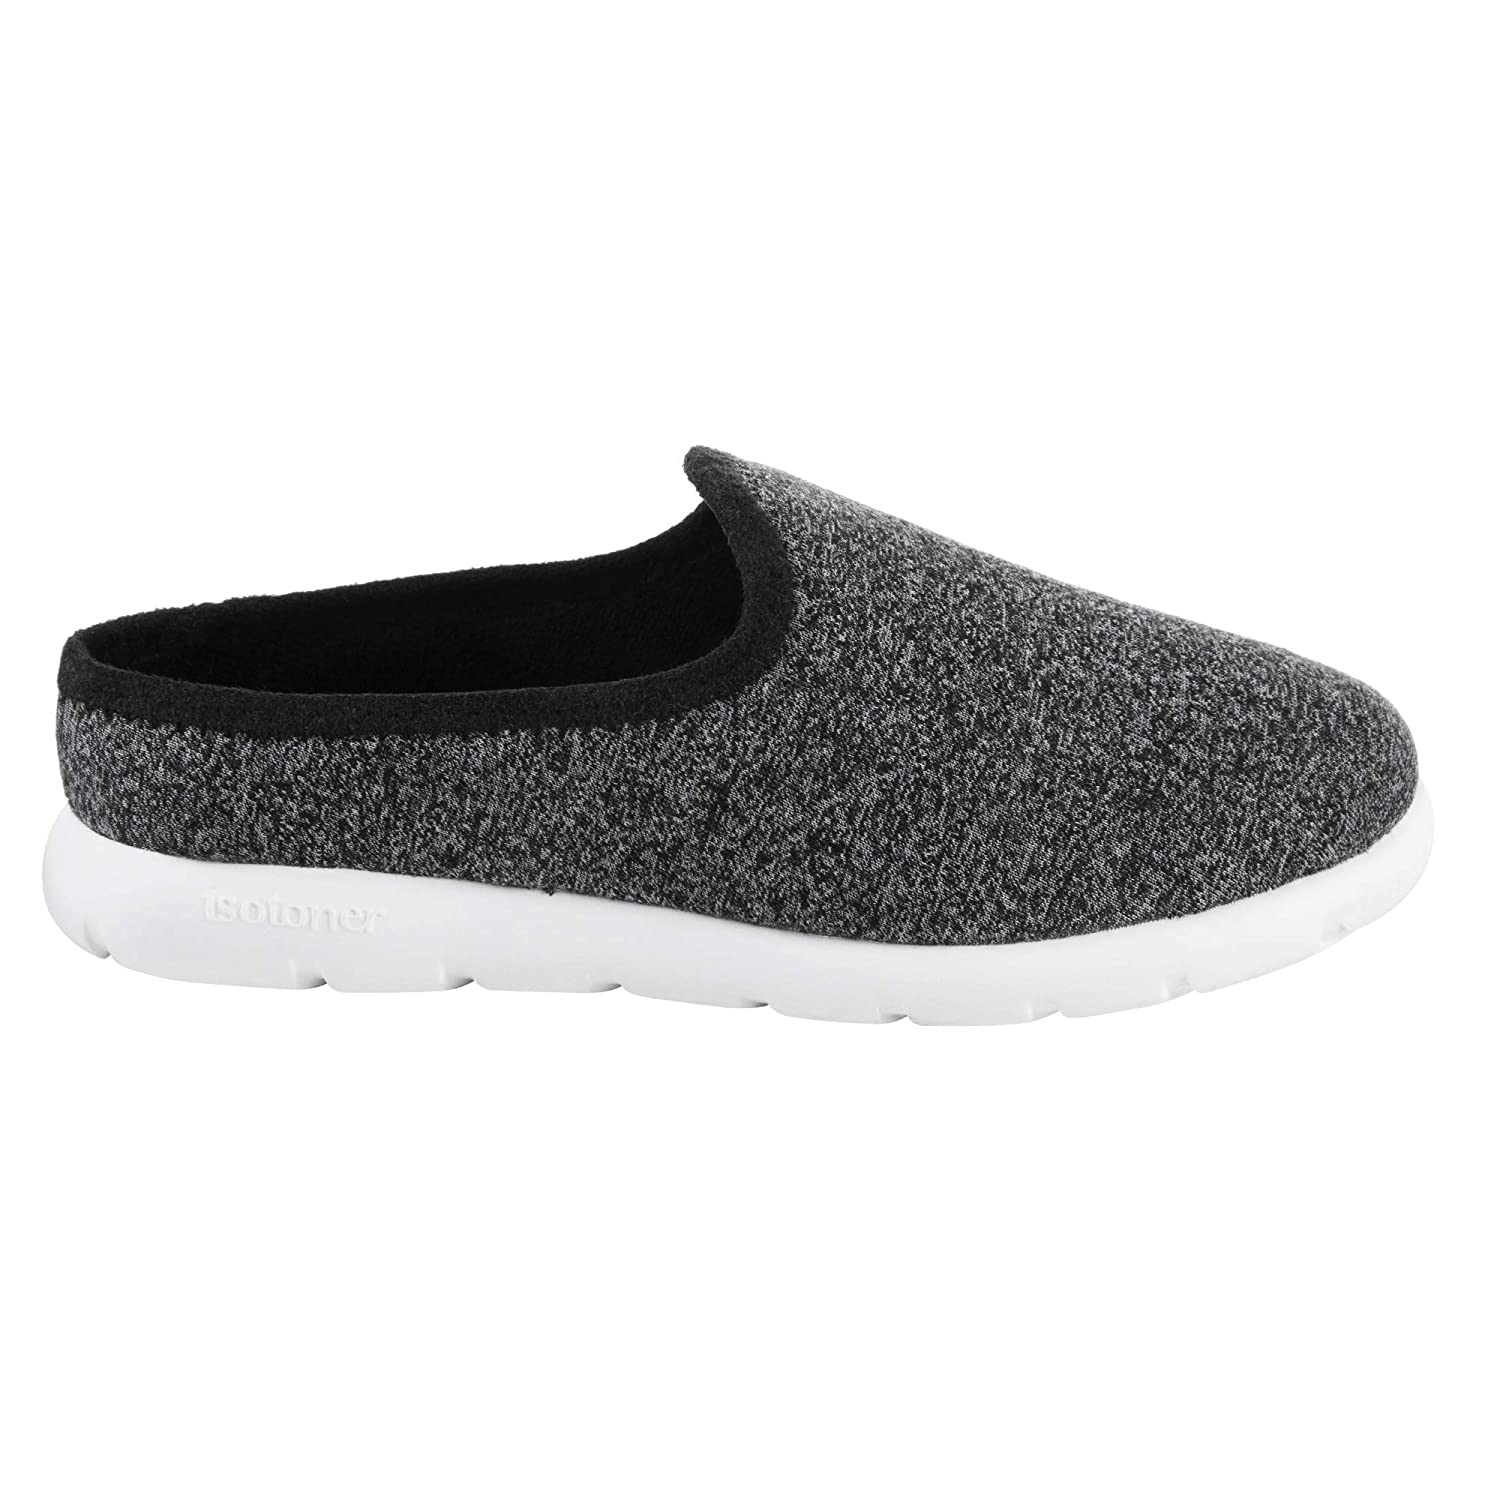 Black Heathered Isotoner Zenz Women's Sport Mesh Hoodback Slipper